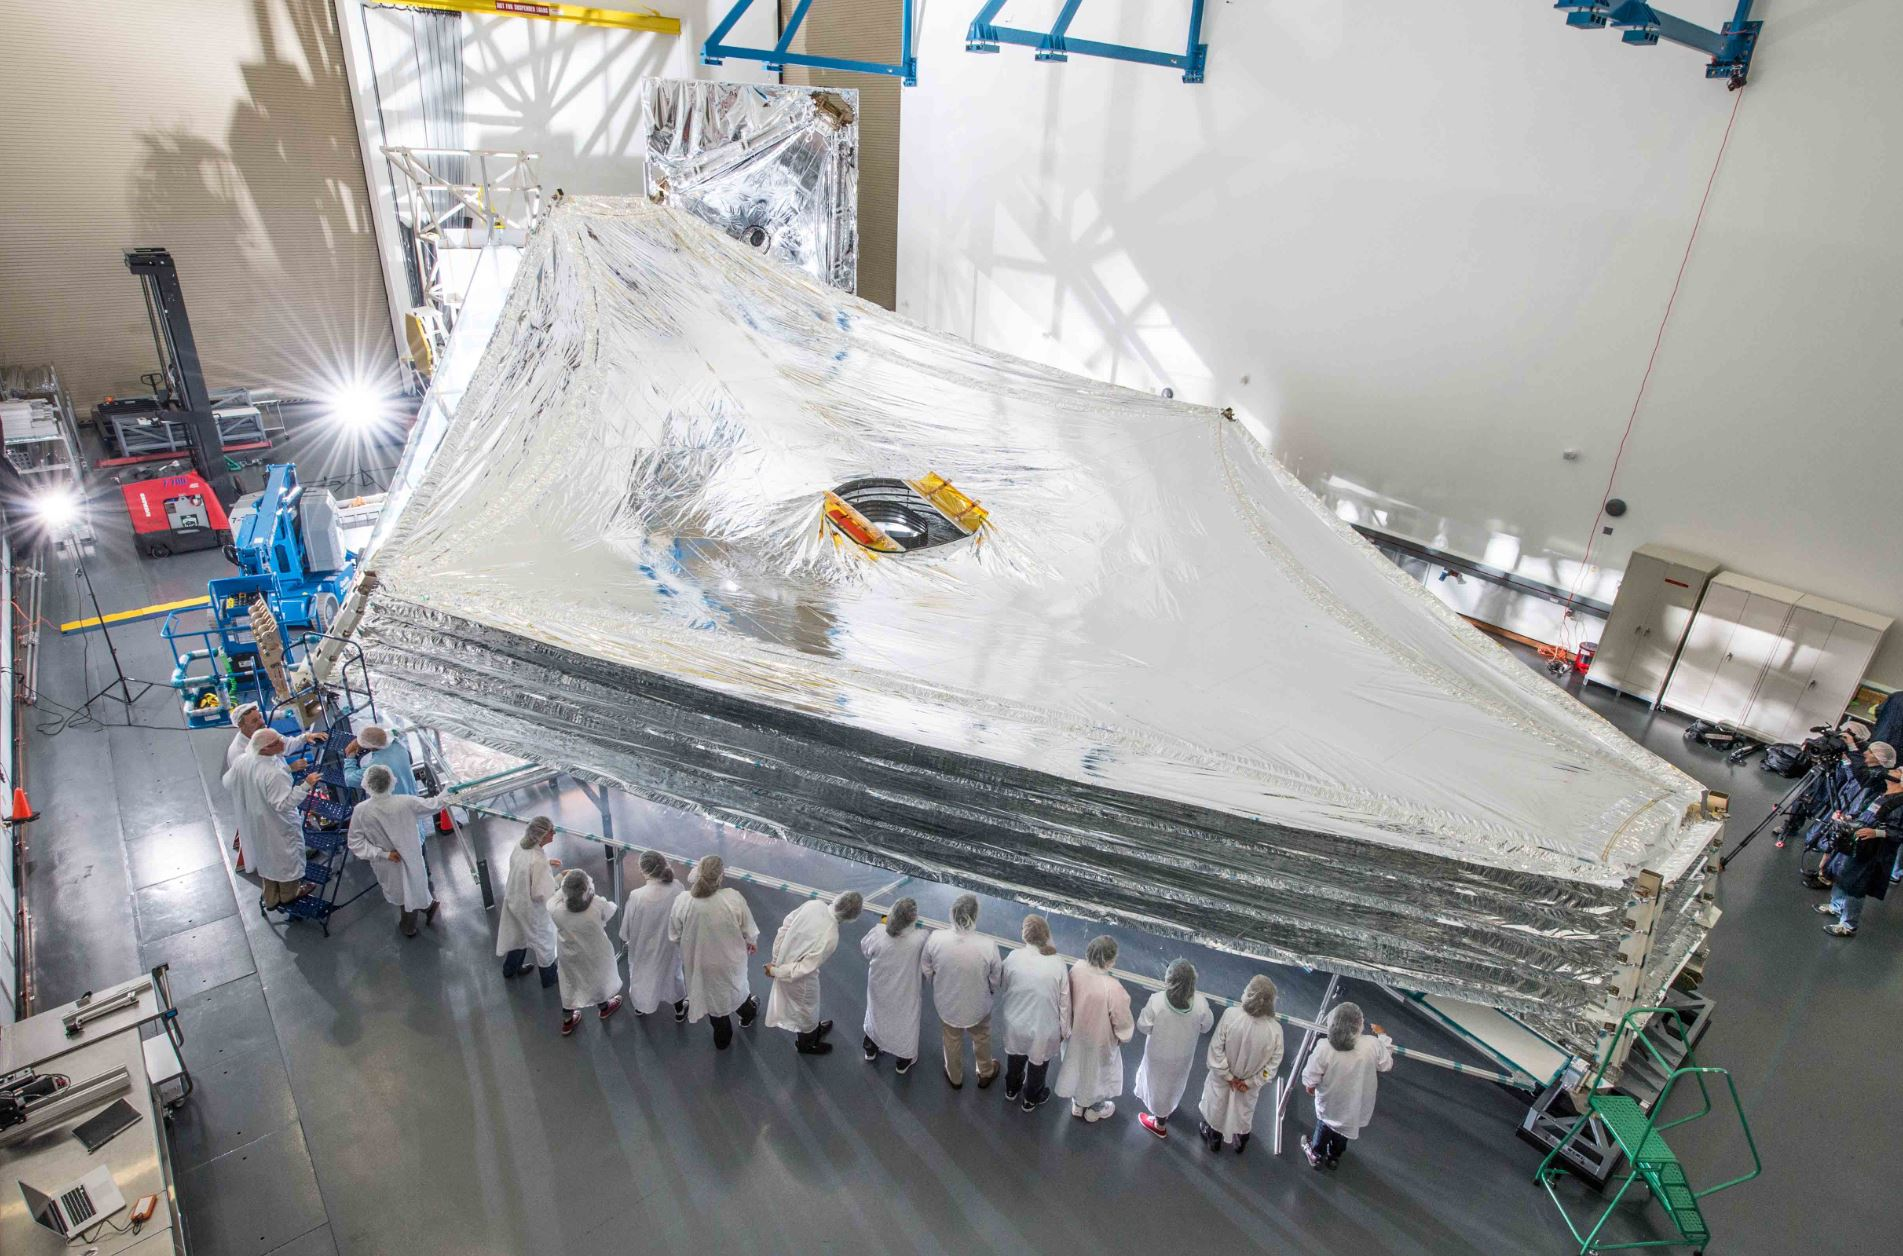 The giant sunshield for the James Webb Space Telescope seen in perspective - Image Credit:  Chris Gunn - NASA Goddard Space Flight Center via Wikimedia Commons